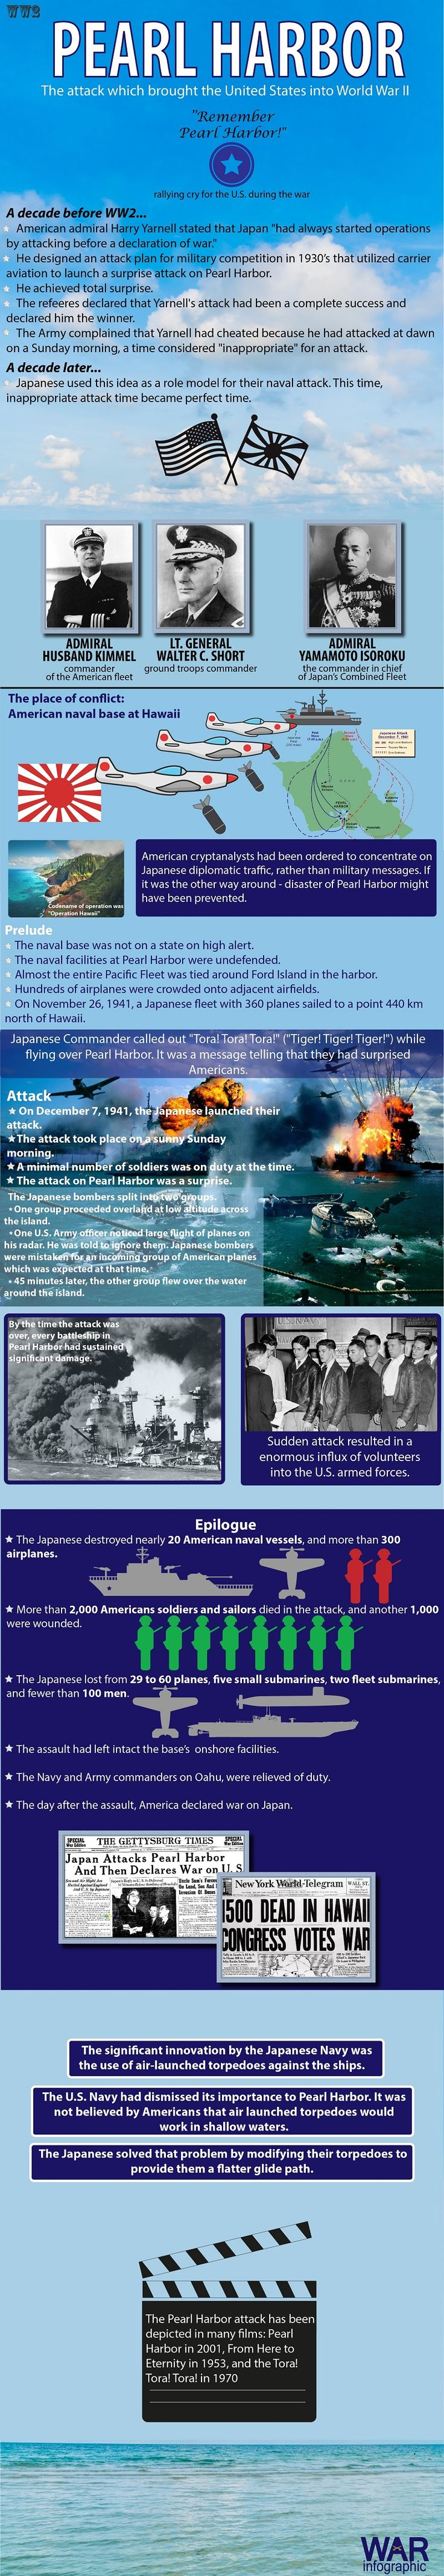 Pearl Harbor battle in WW2. Little known fact that the Japanese plan of Pearl Harbor attack had been designed by an American admiral.